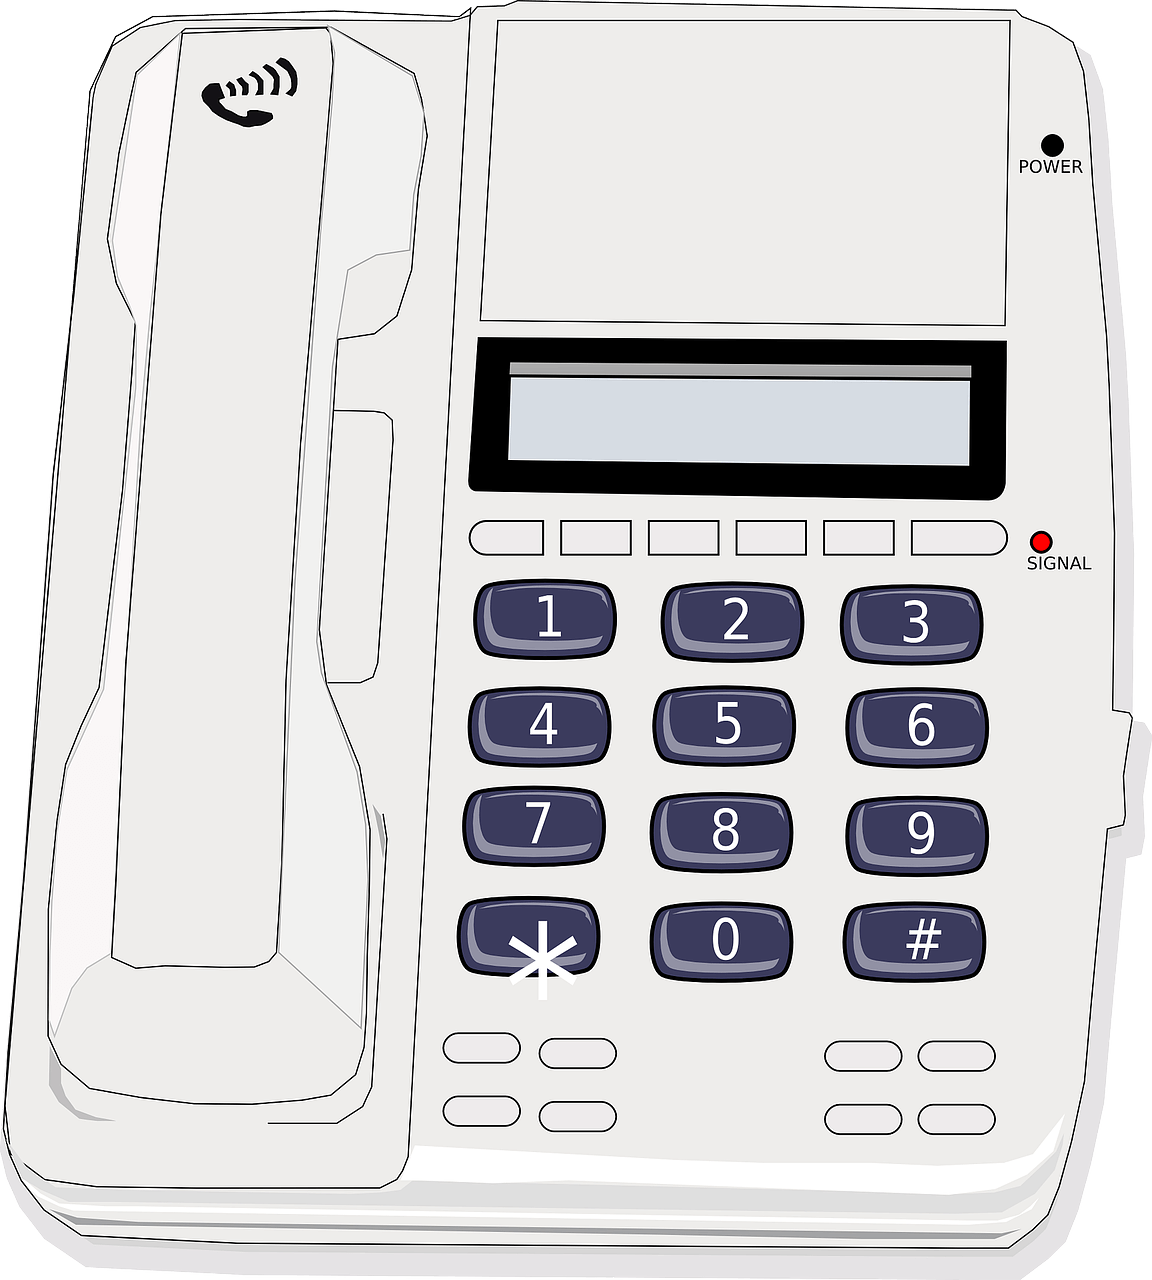 Wireframe graphic of a desktop business phone